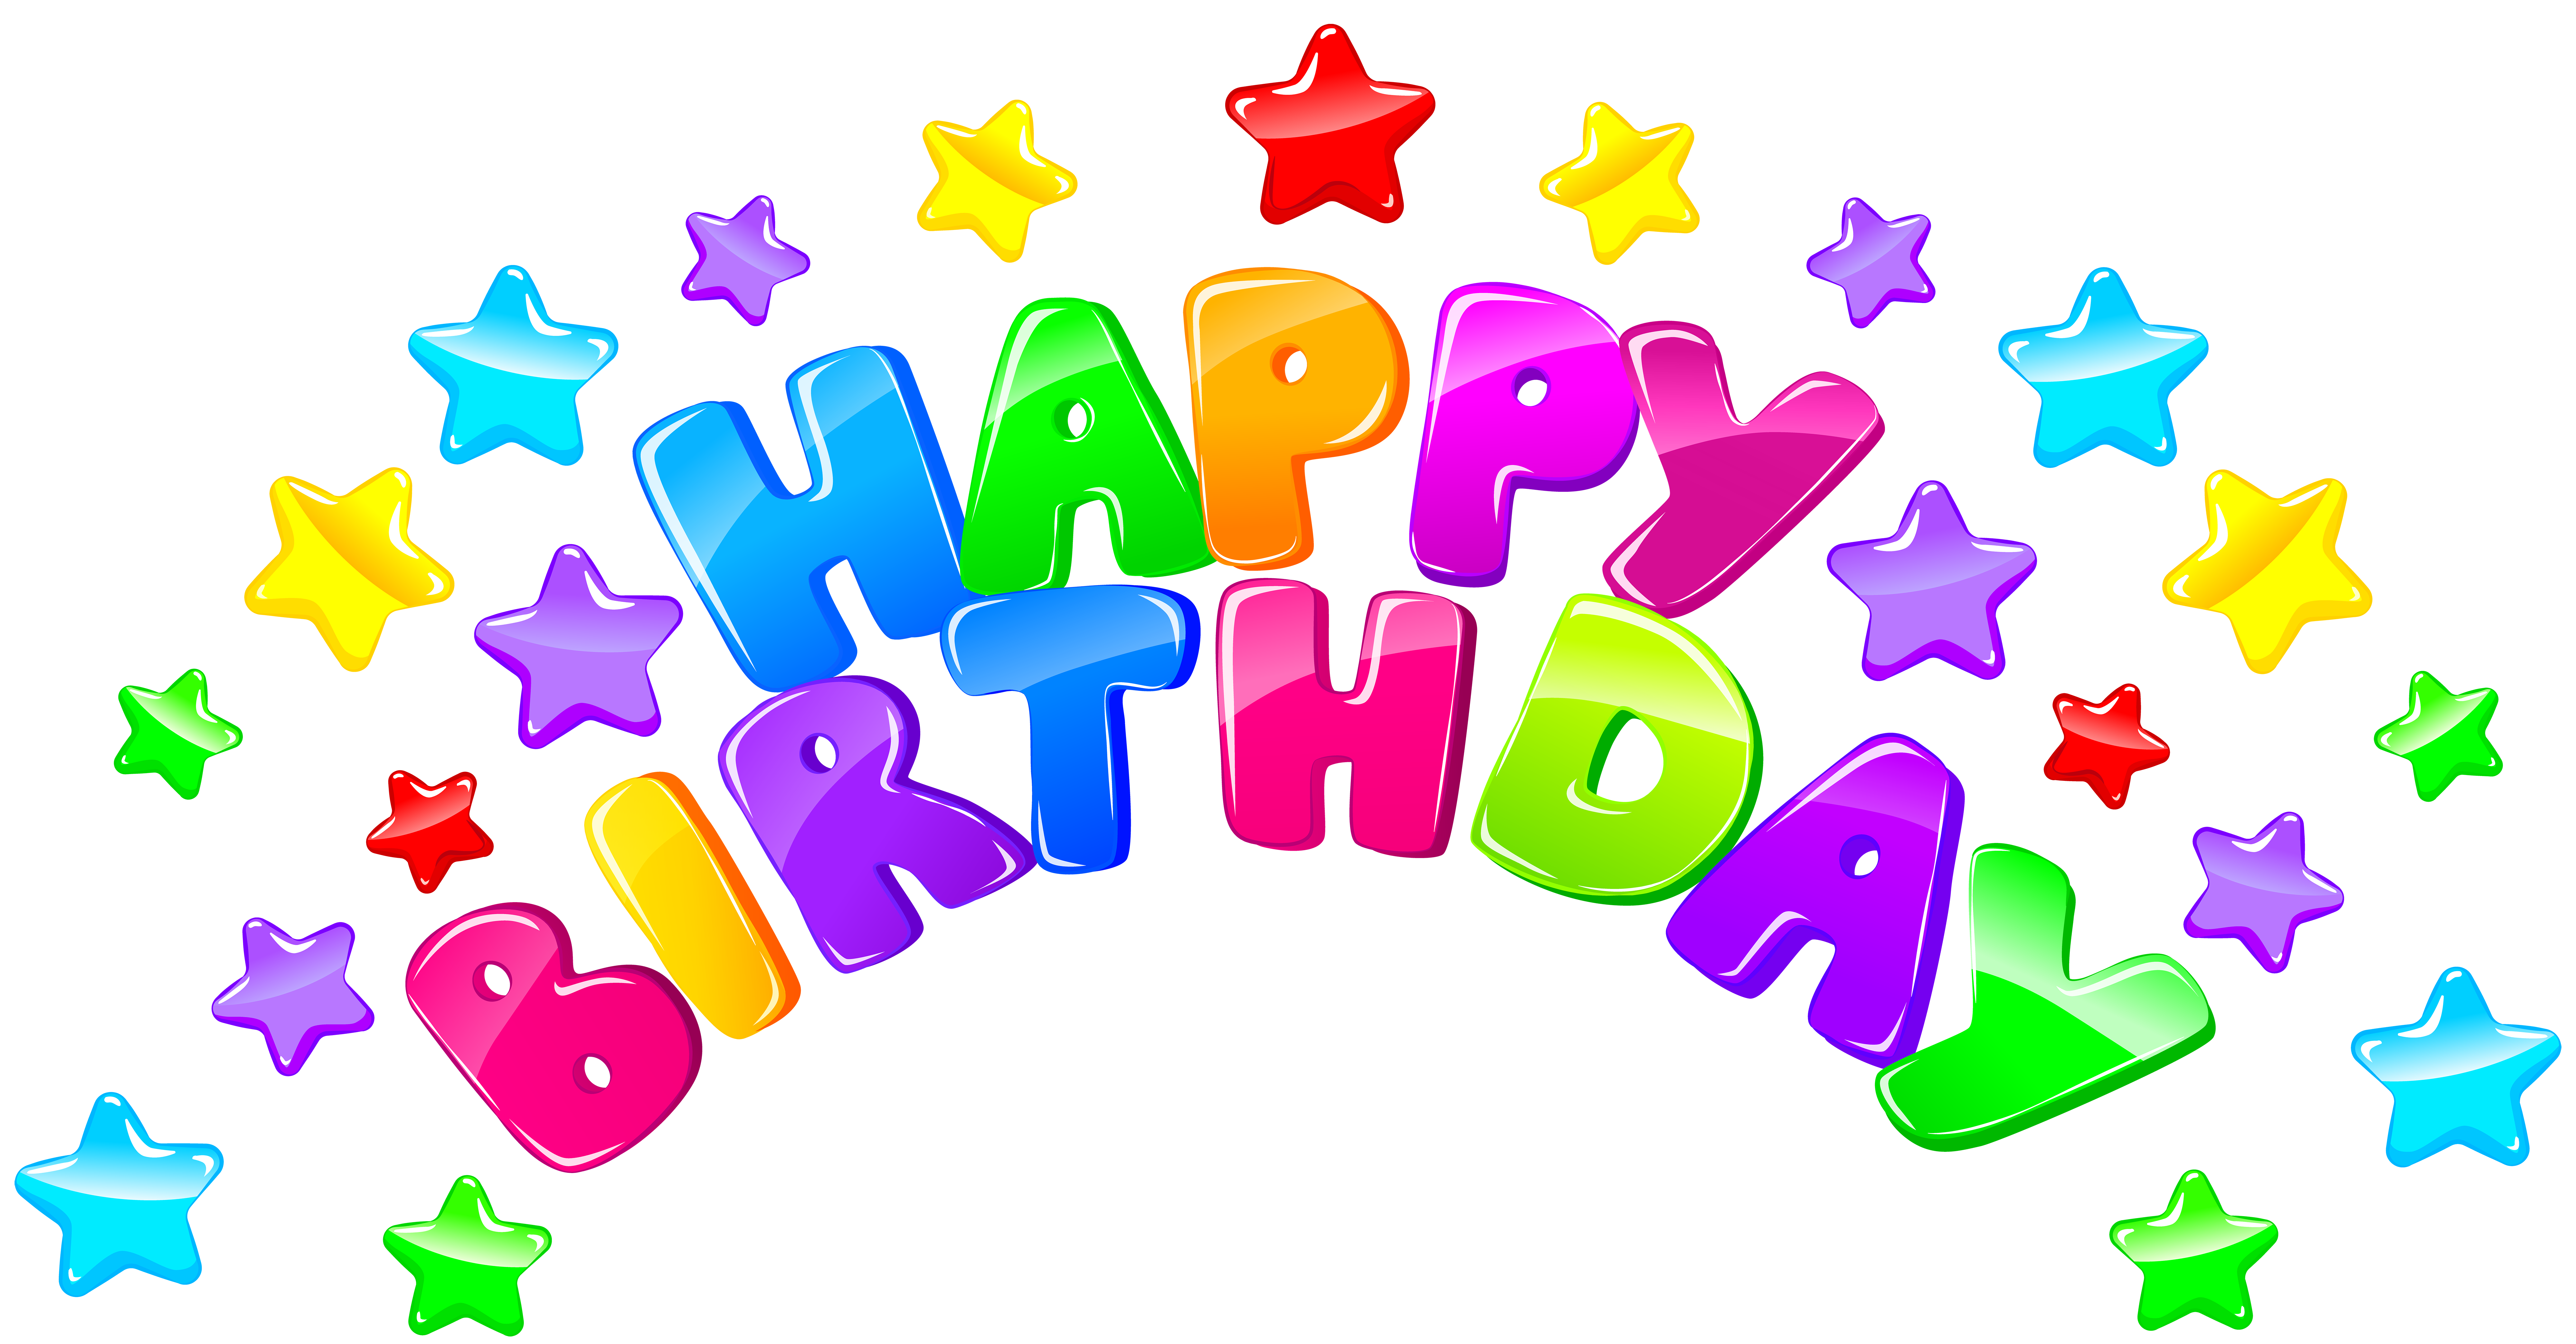 jpg transparent Decor with stars png. Happy birthday sister clipart